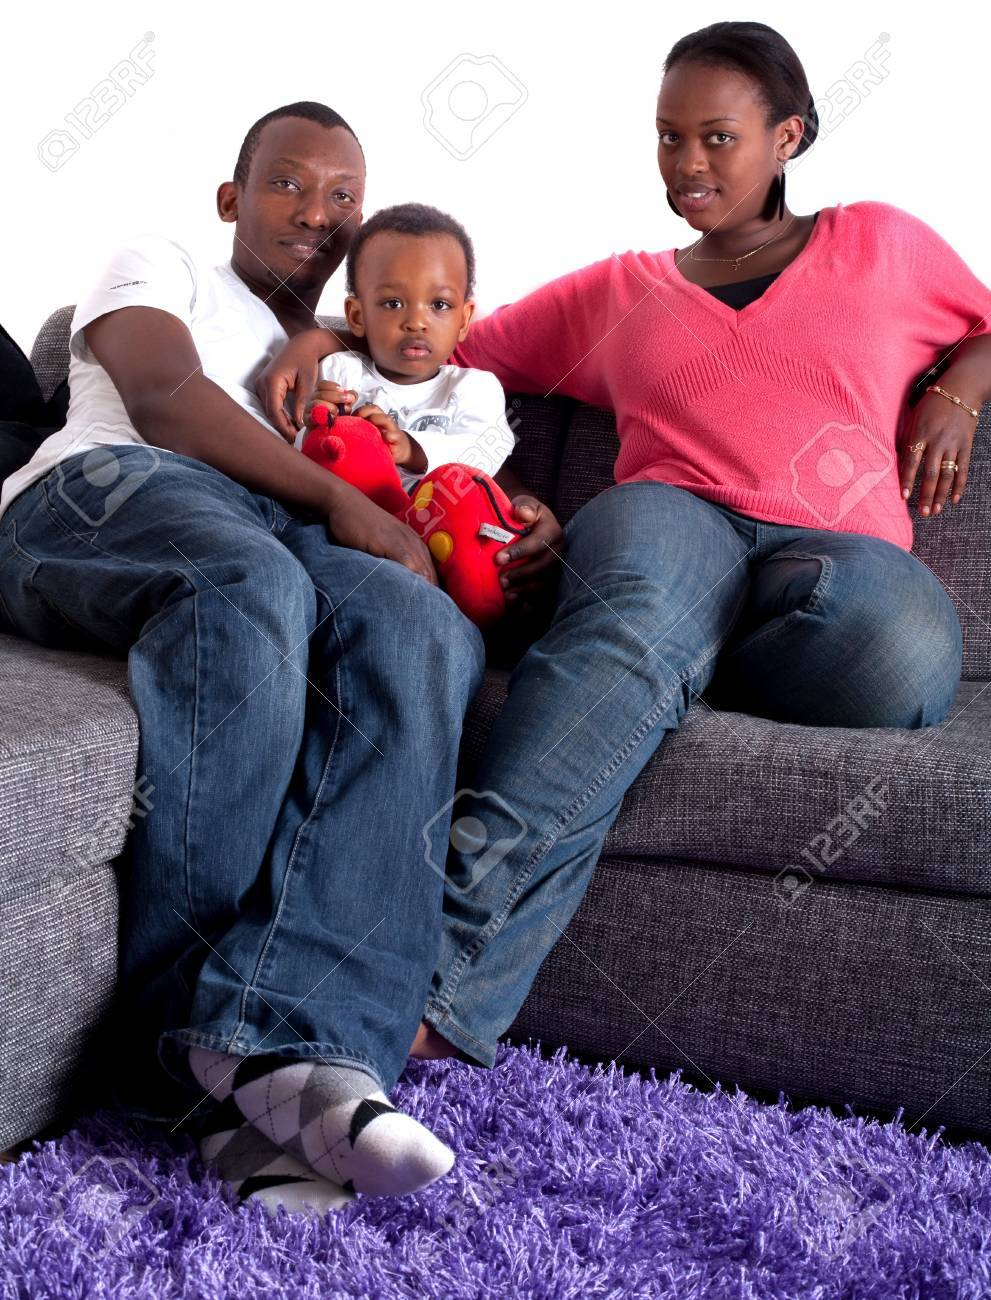 Young afro american family in a living room setting. Stock Photo - 7410146